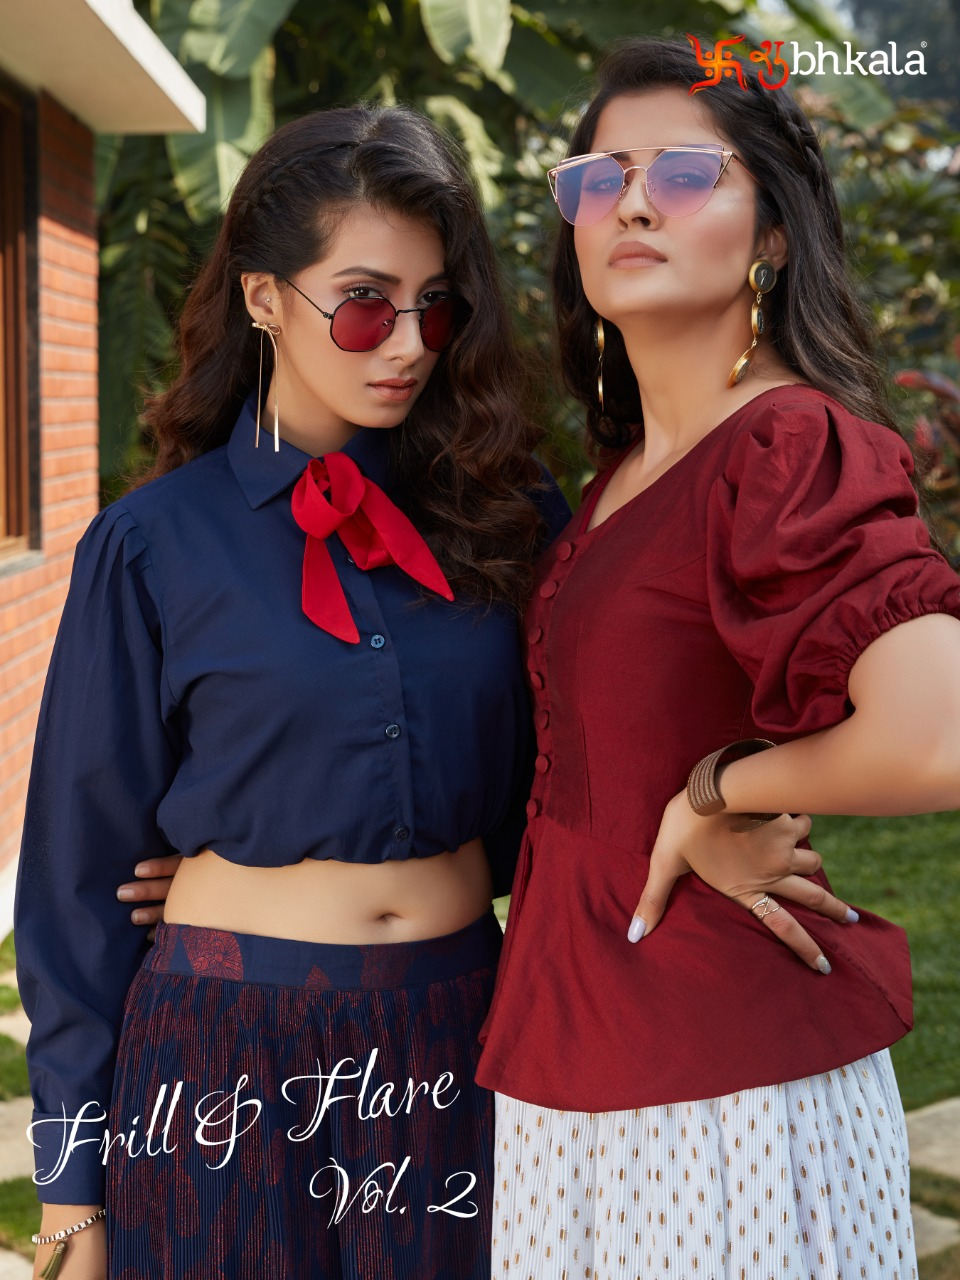 Shubh Kala Frill And Flare Vol 2 Cotton Imported Crop Top With Skirt